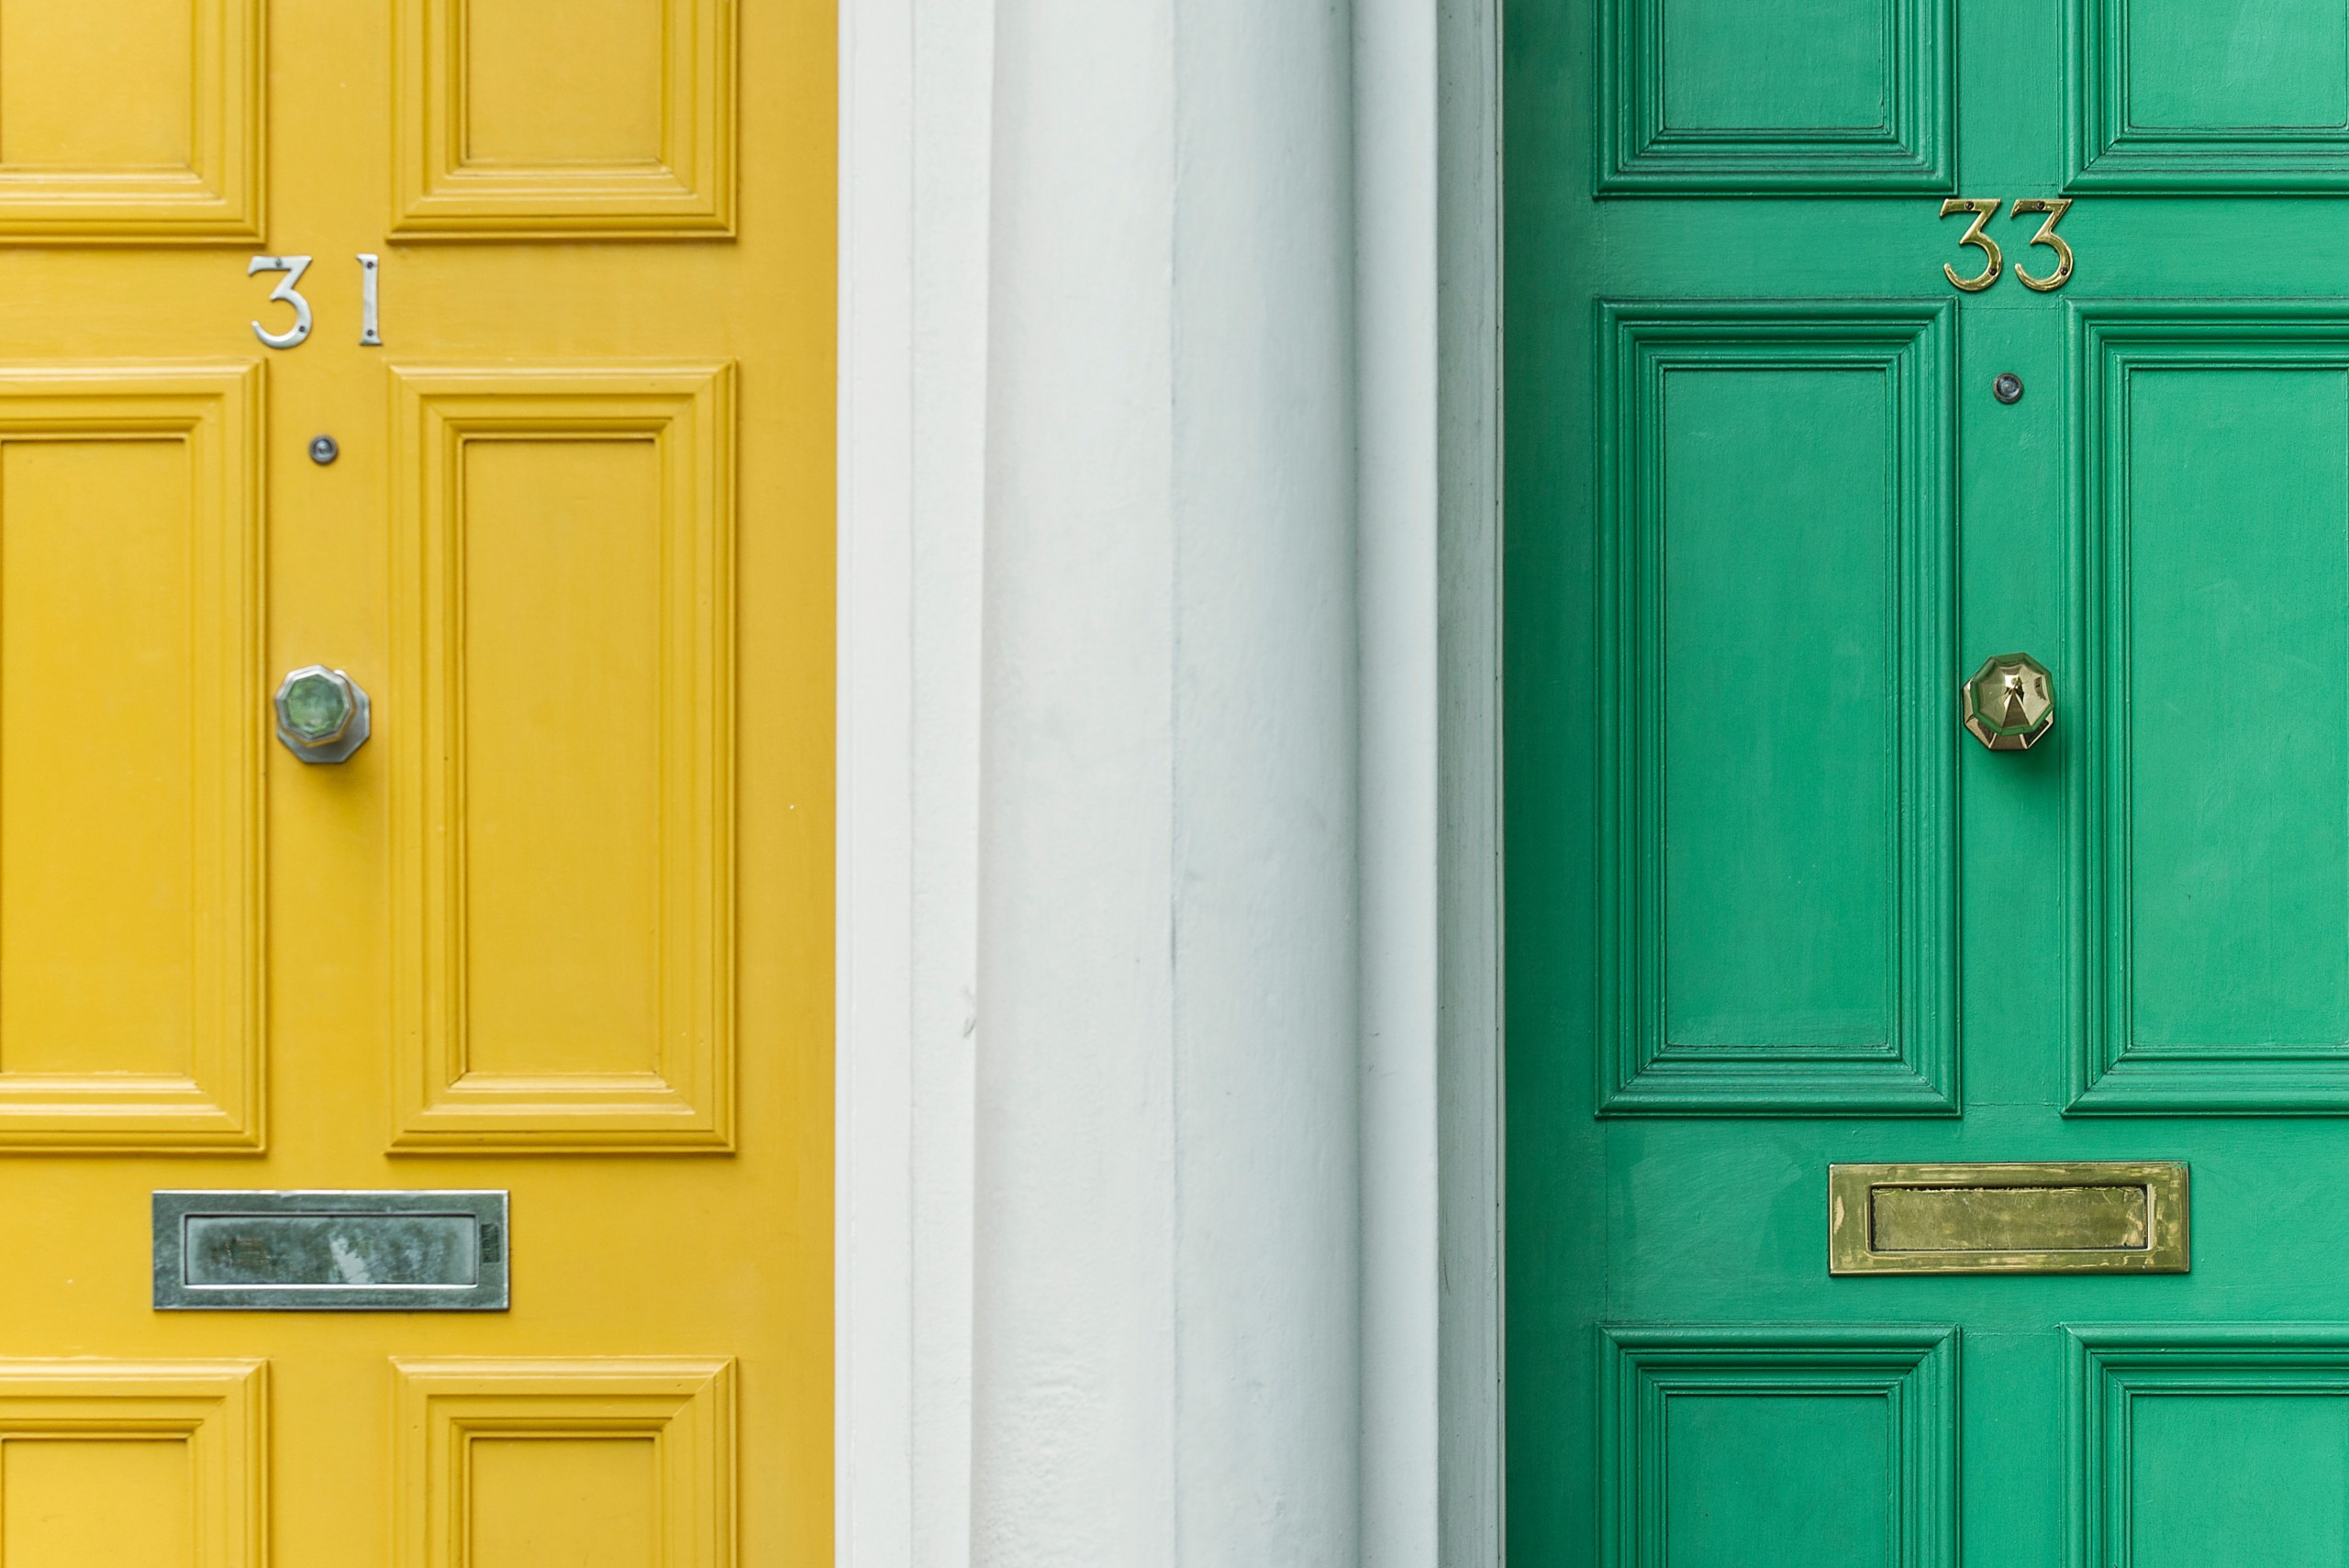 green and yellow front doors